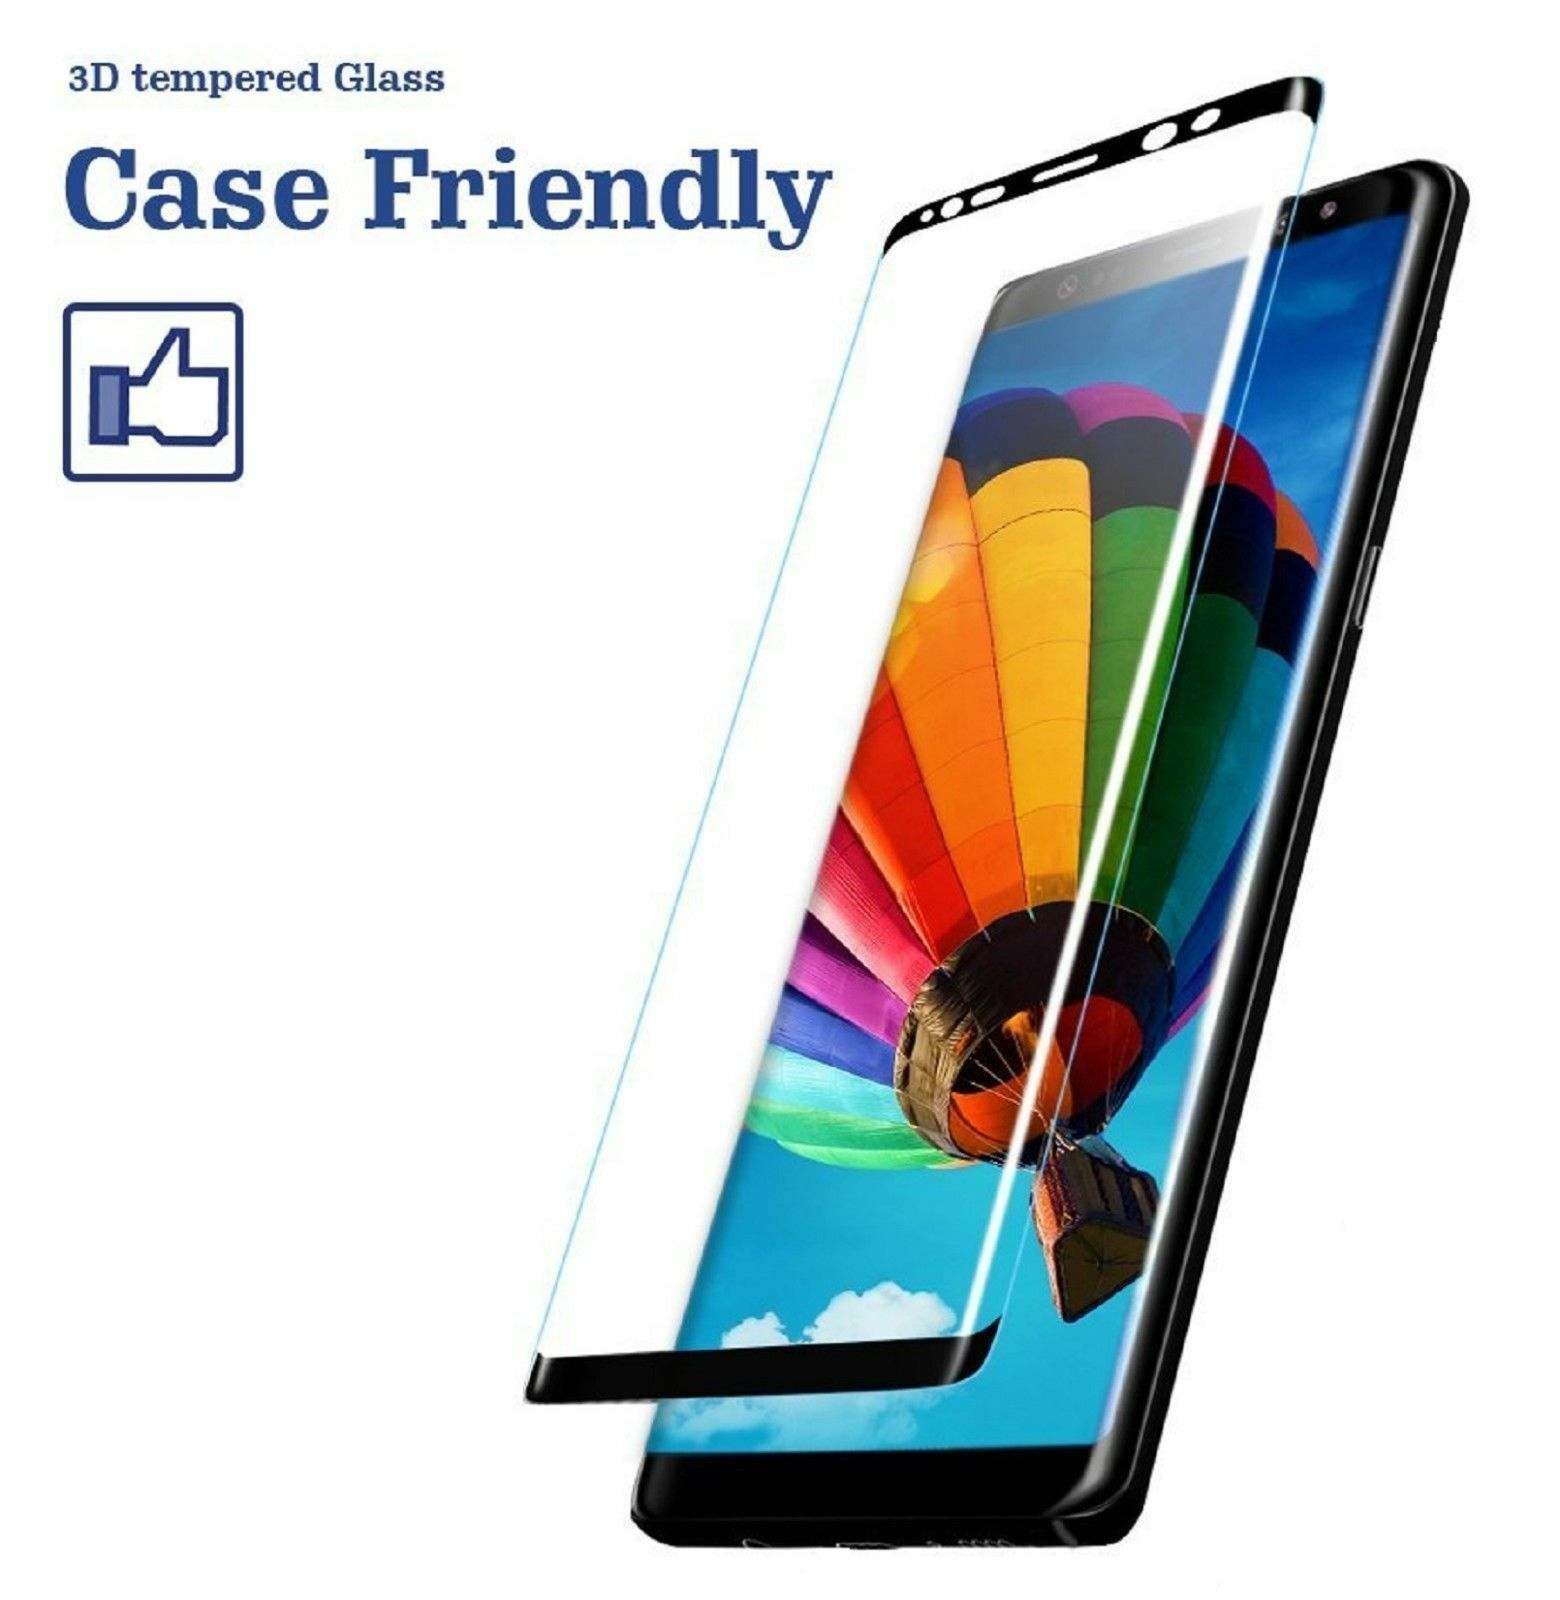 Купить Pro Glass+ - Samsung Galaxy S9 S8 Plus Note 8 9 4D Full Cover Tempered Glass Screen Protector